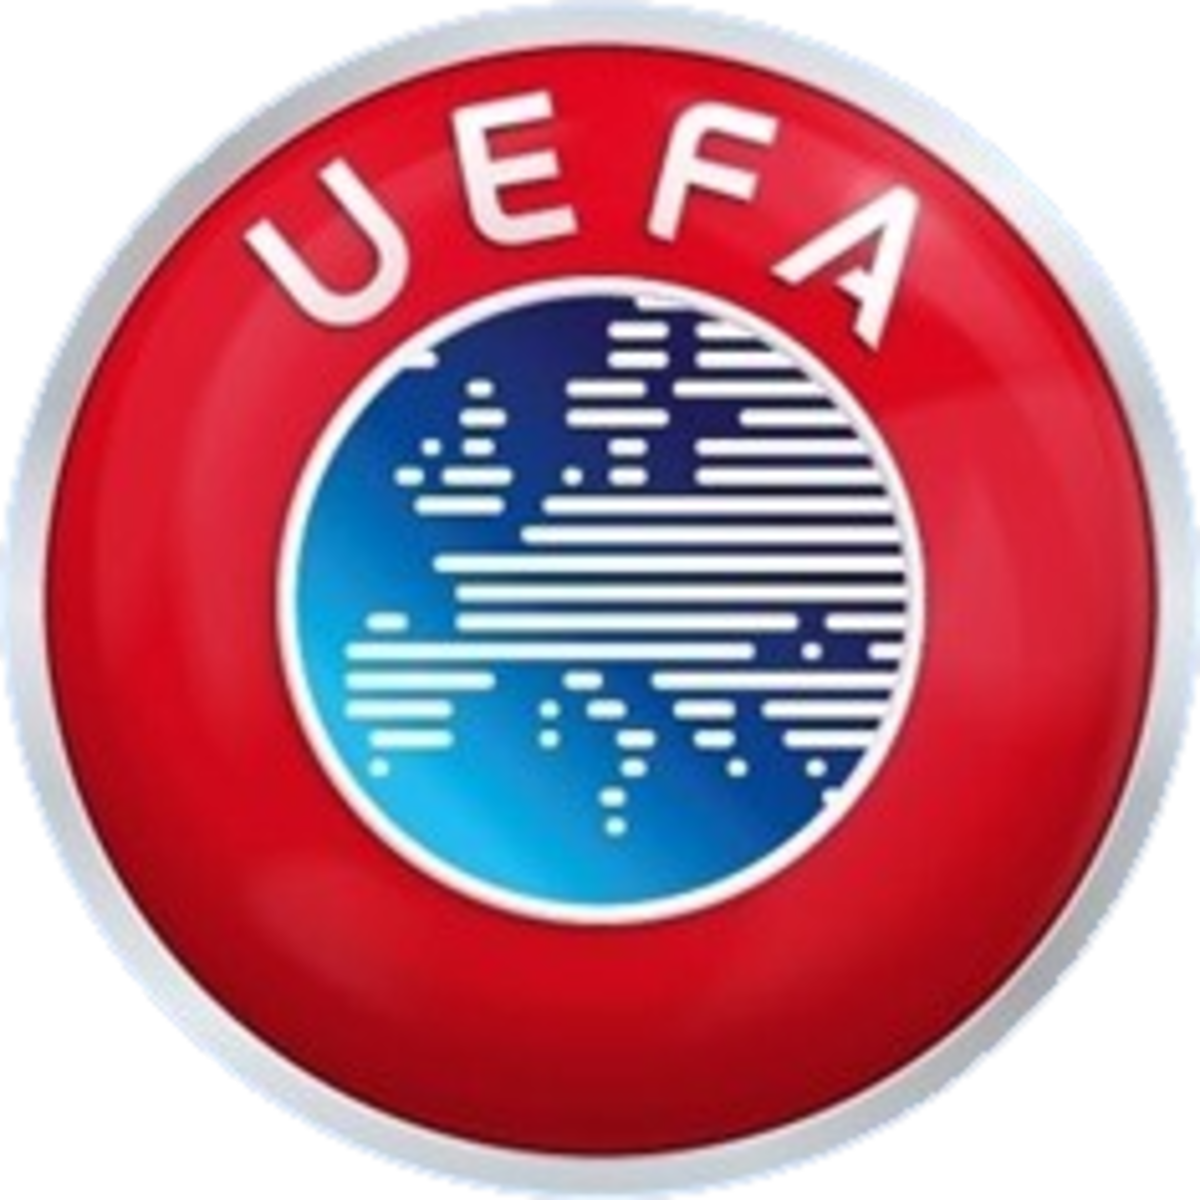 UEFA regulates all of the top international and club competitions in European Football.